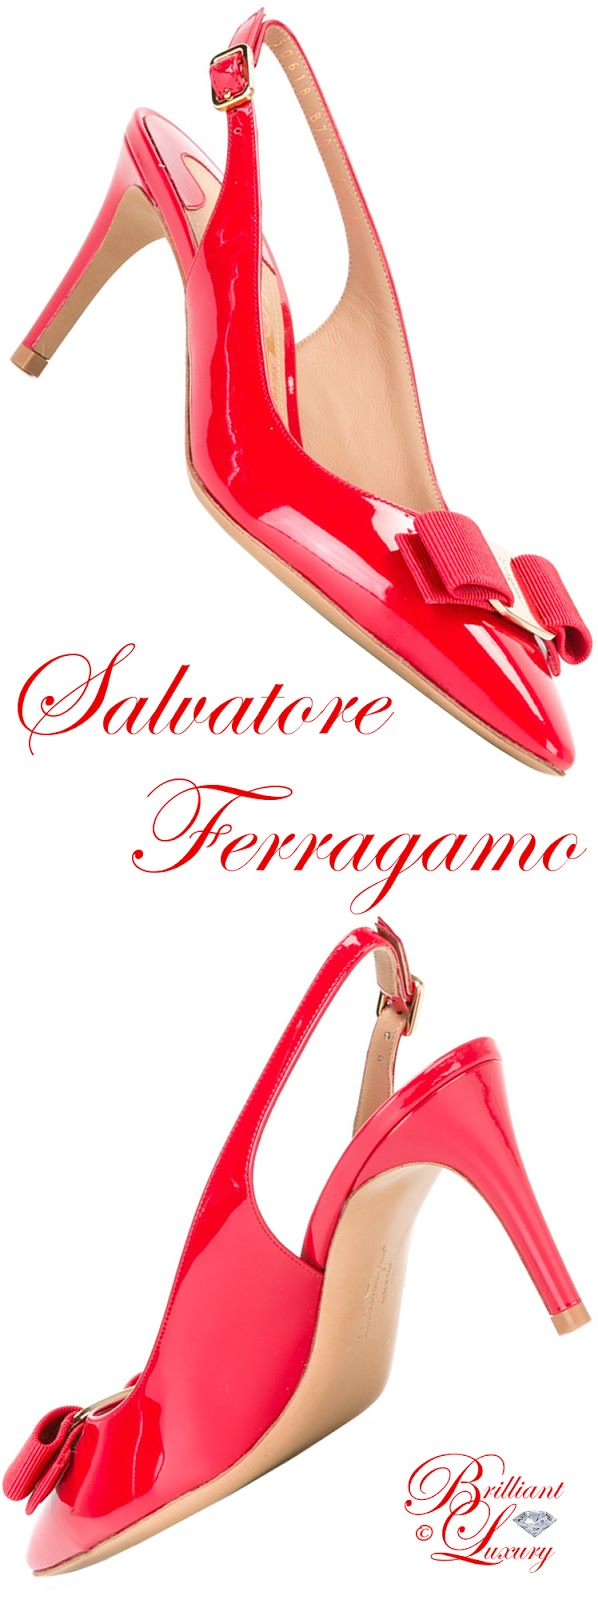 Brilliant Luxury ♦ Salvatore Ferragamo slingback sandals